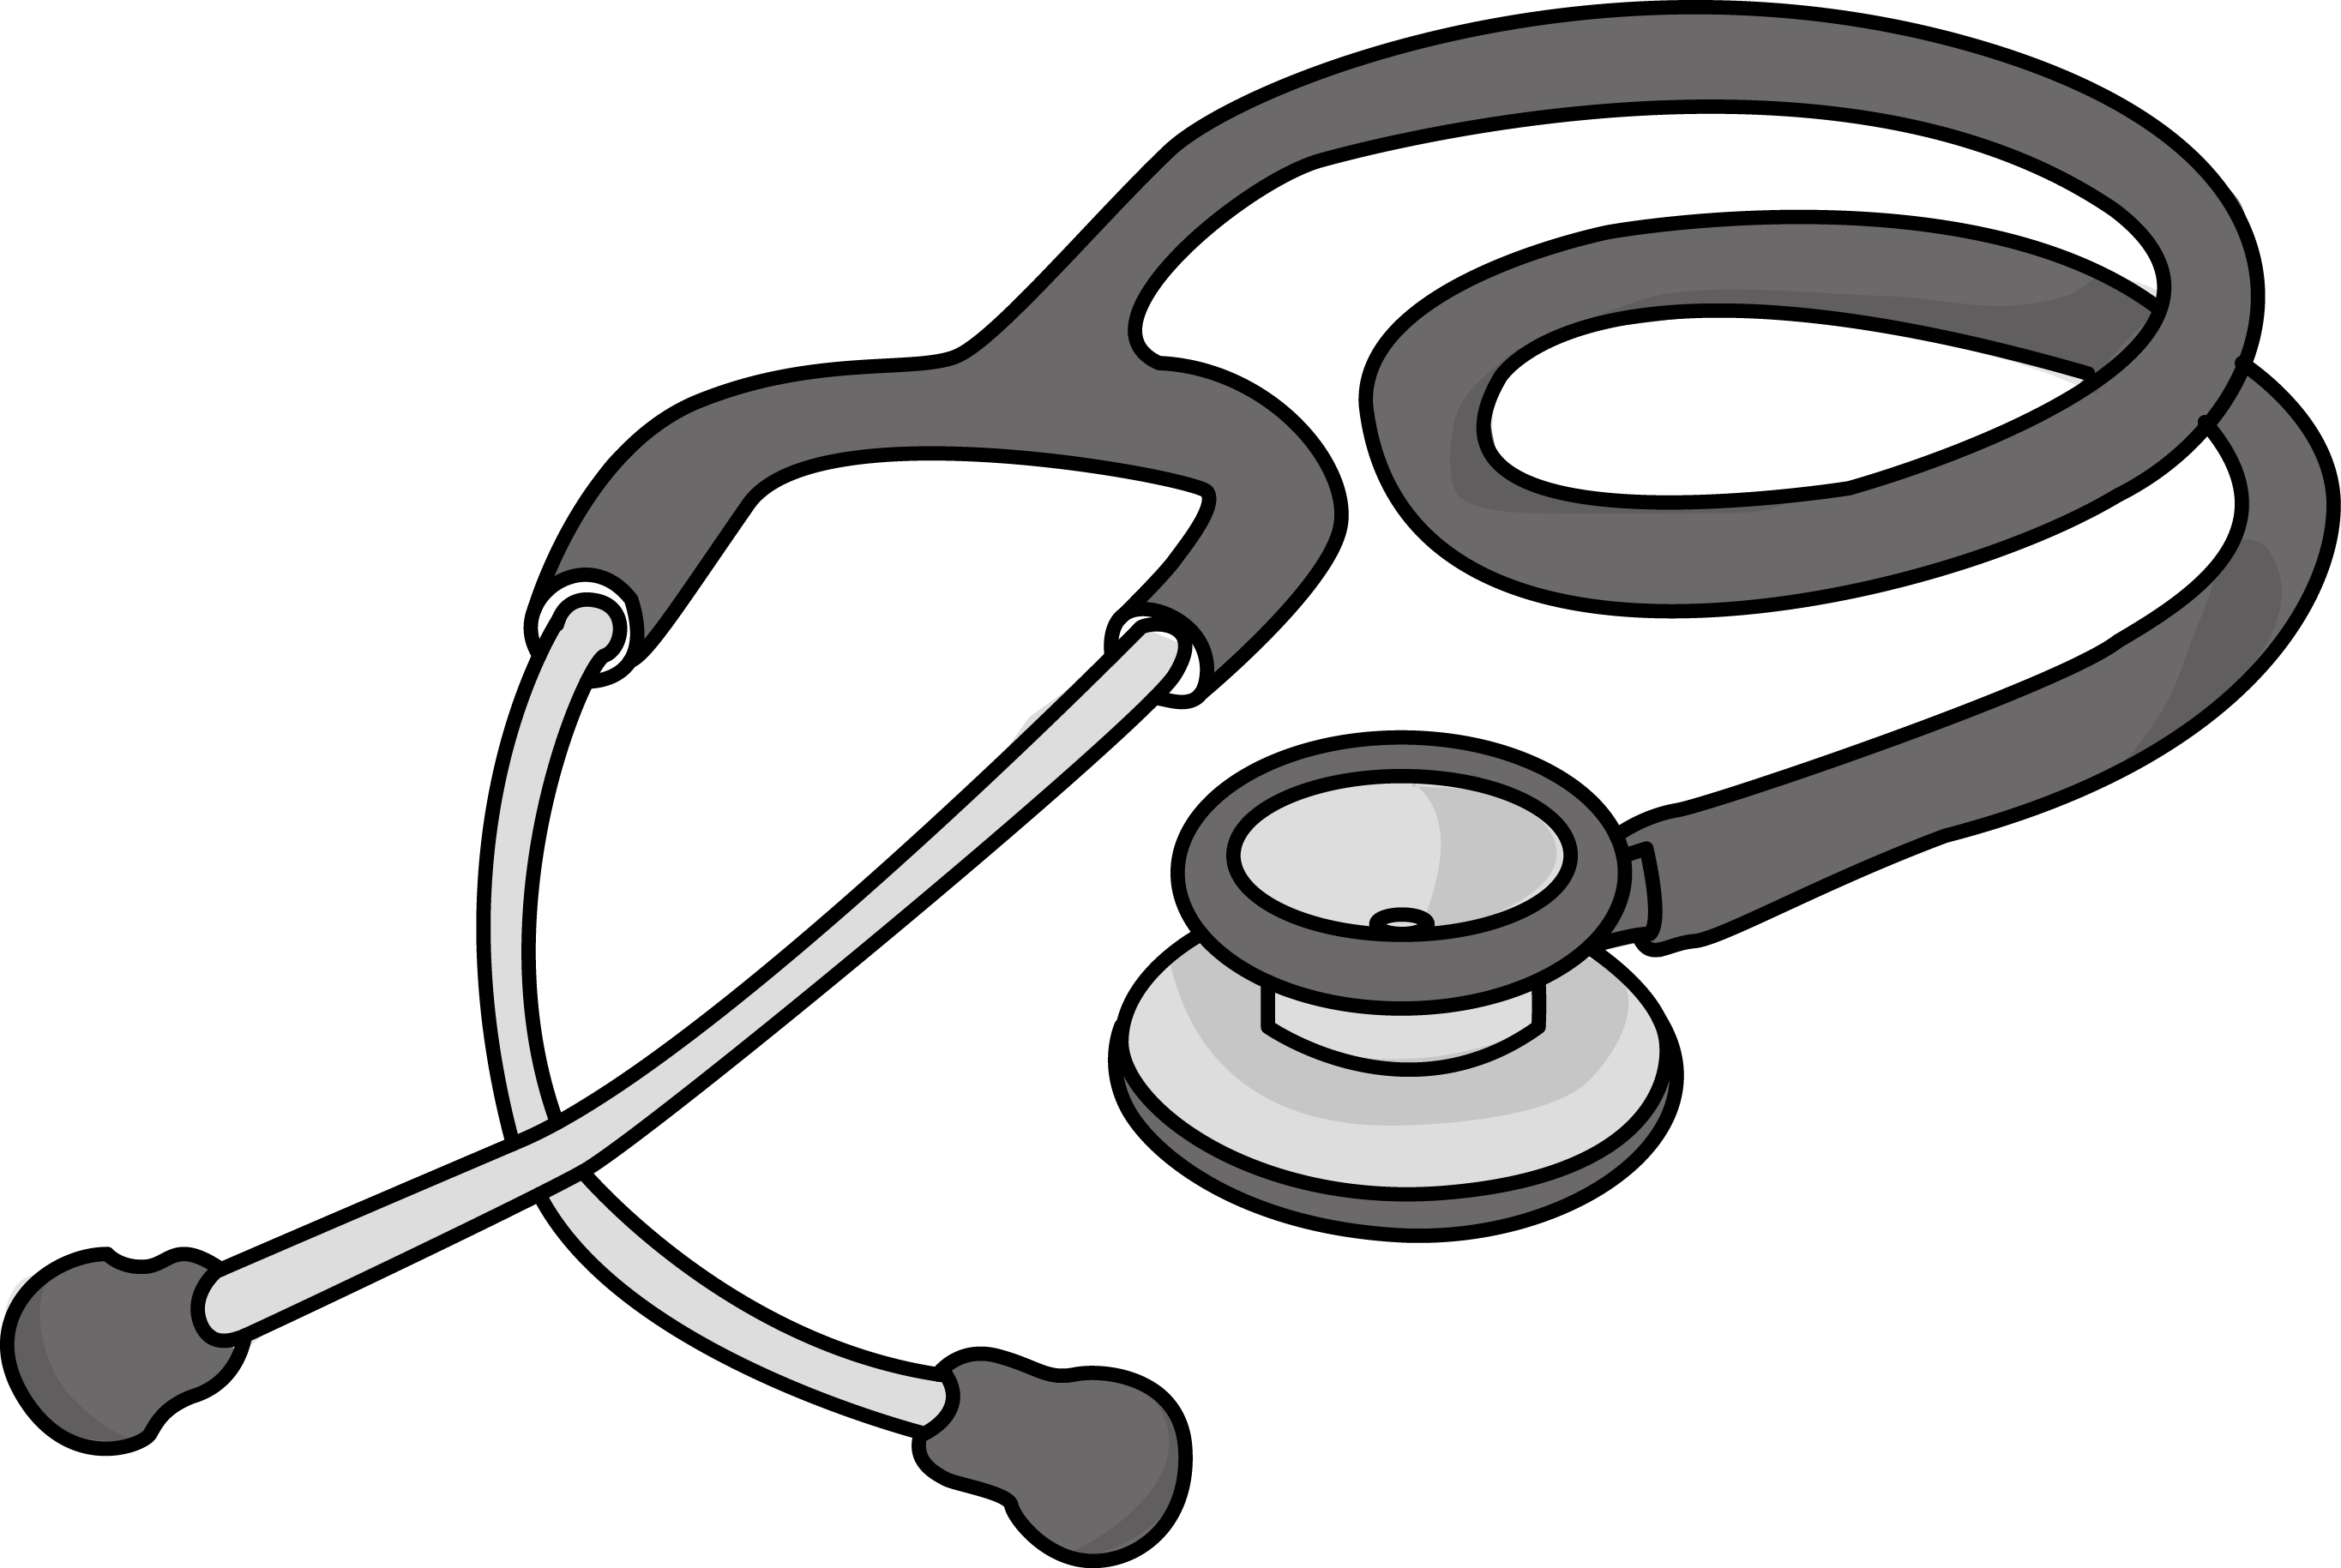 Stethoscope clipart vector heart image freeuse Red Cross Clipart High Resolution#3844321 image freeuse